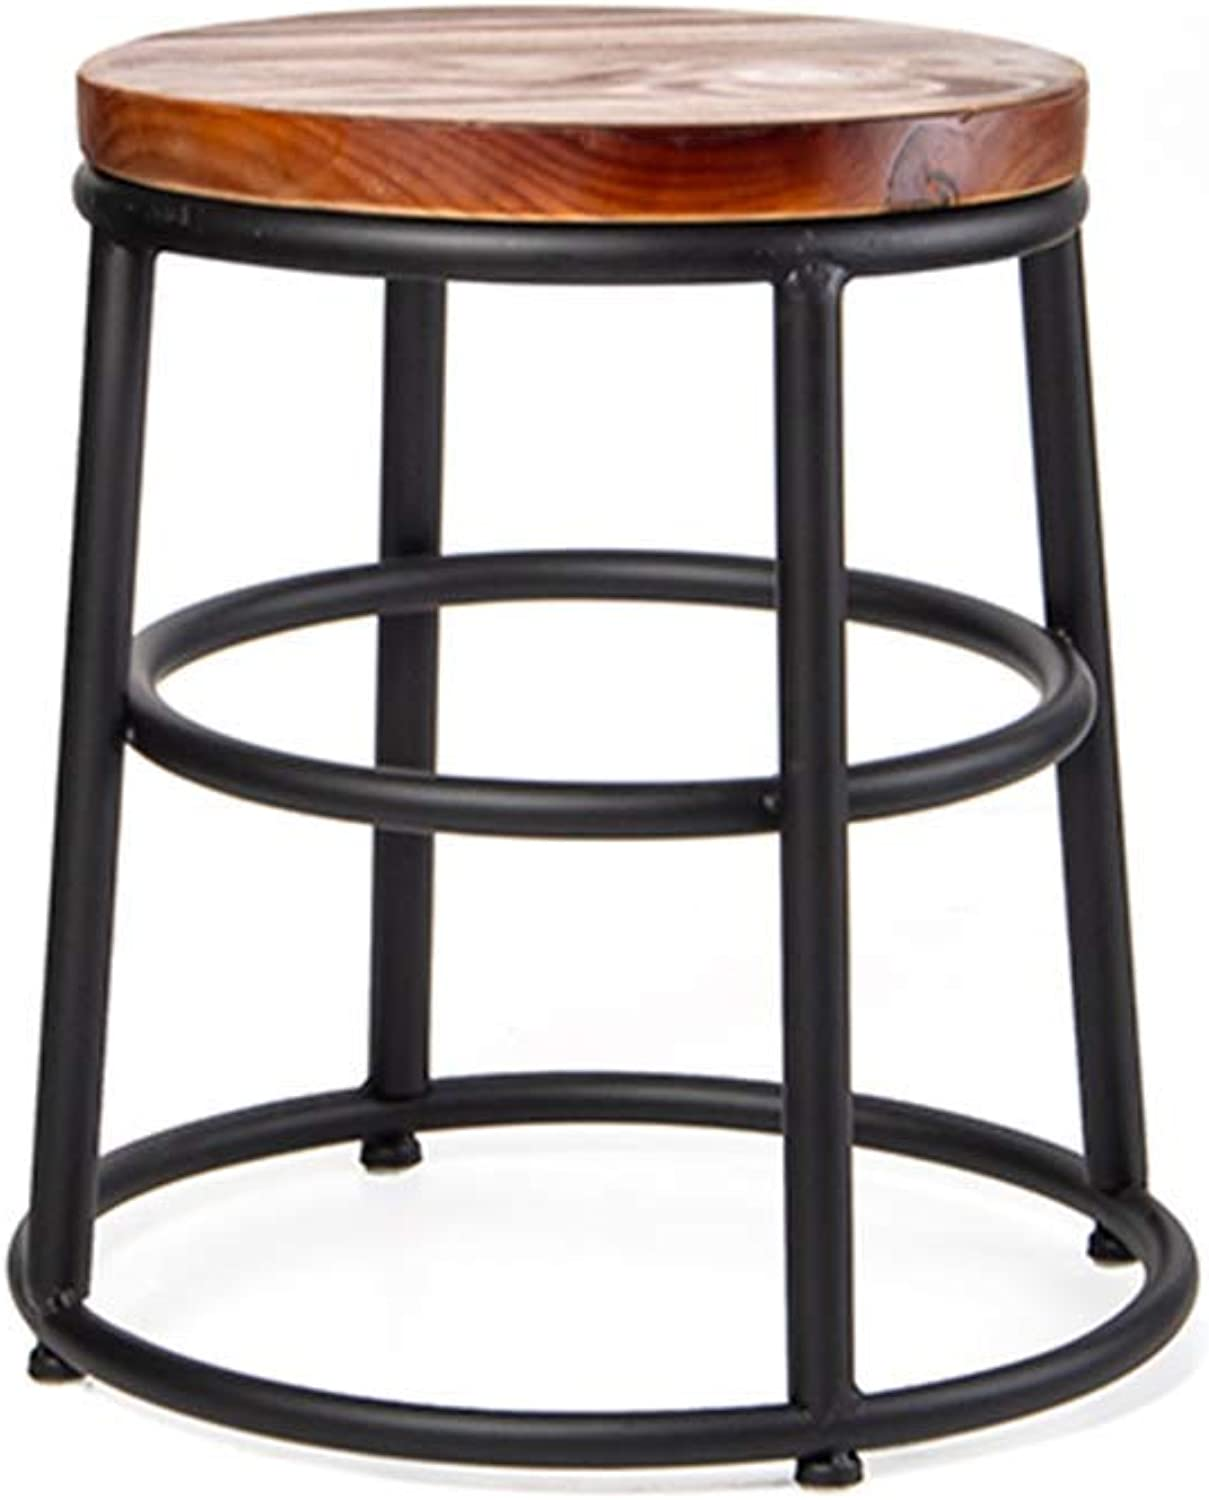 Simple Retro Barstool,Nordic Industrial Style Iron Bar Stool Chair Romantic Leisure Tall Stool with Wooden Seat for Bar Kitchen Pub Breakfast Dining,Black,Black (45cm)